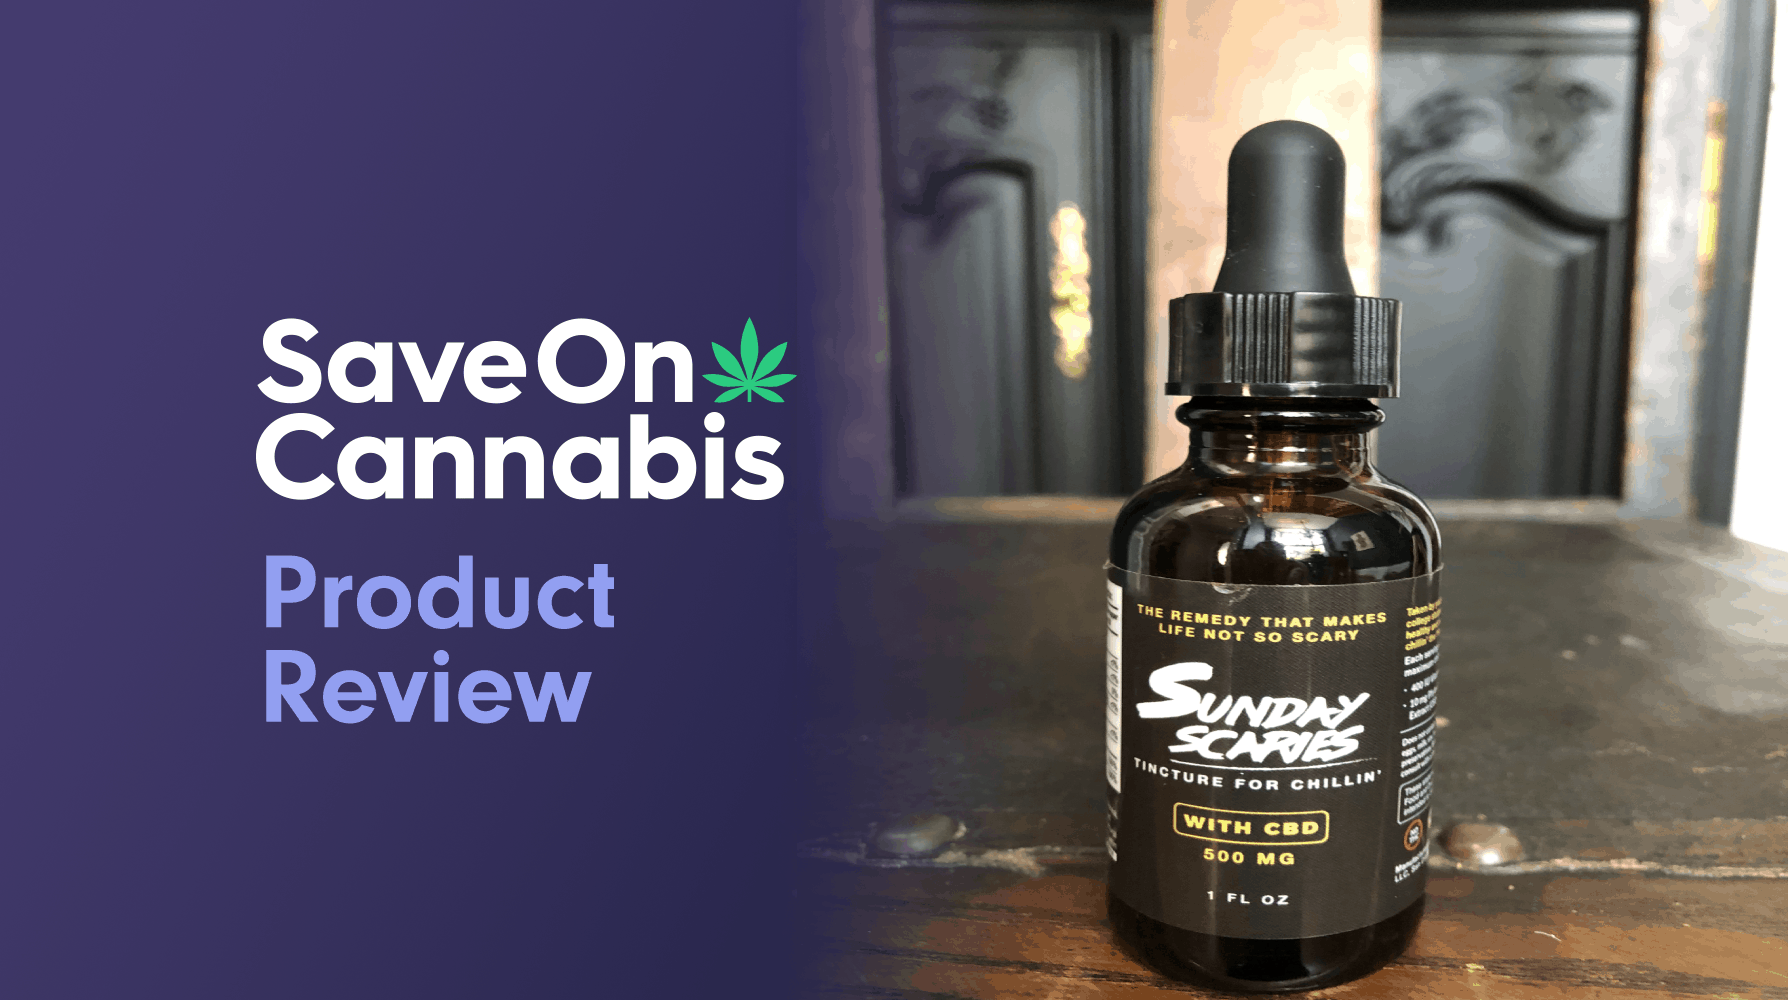 Sunday Scaries CBD Oil Tincture Save On Cannabis Review Website